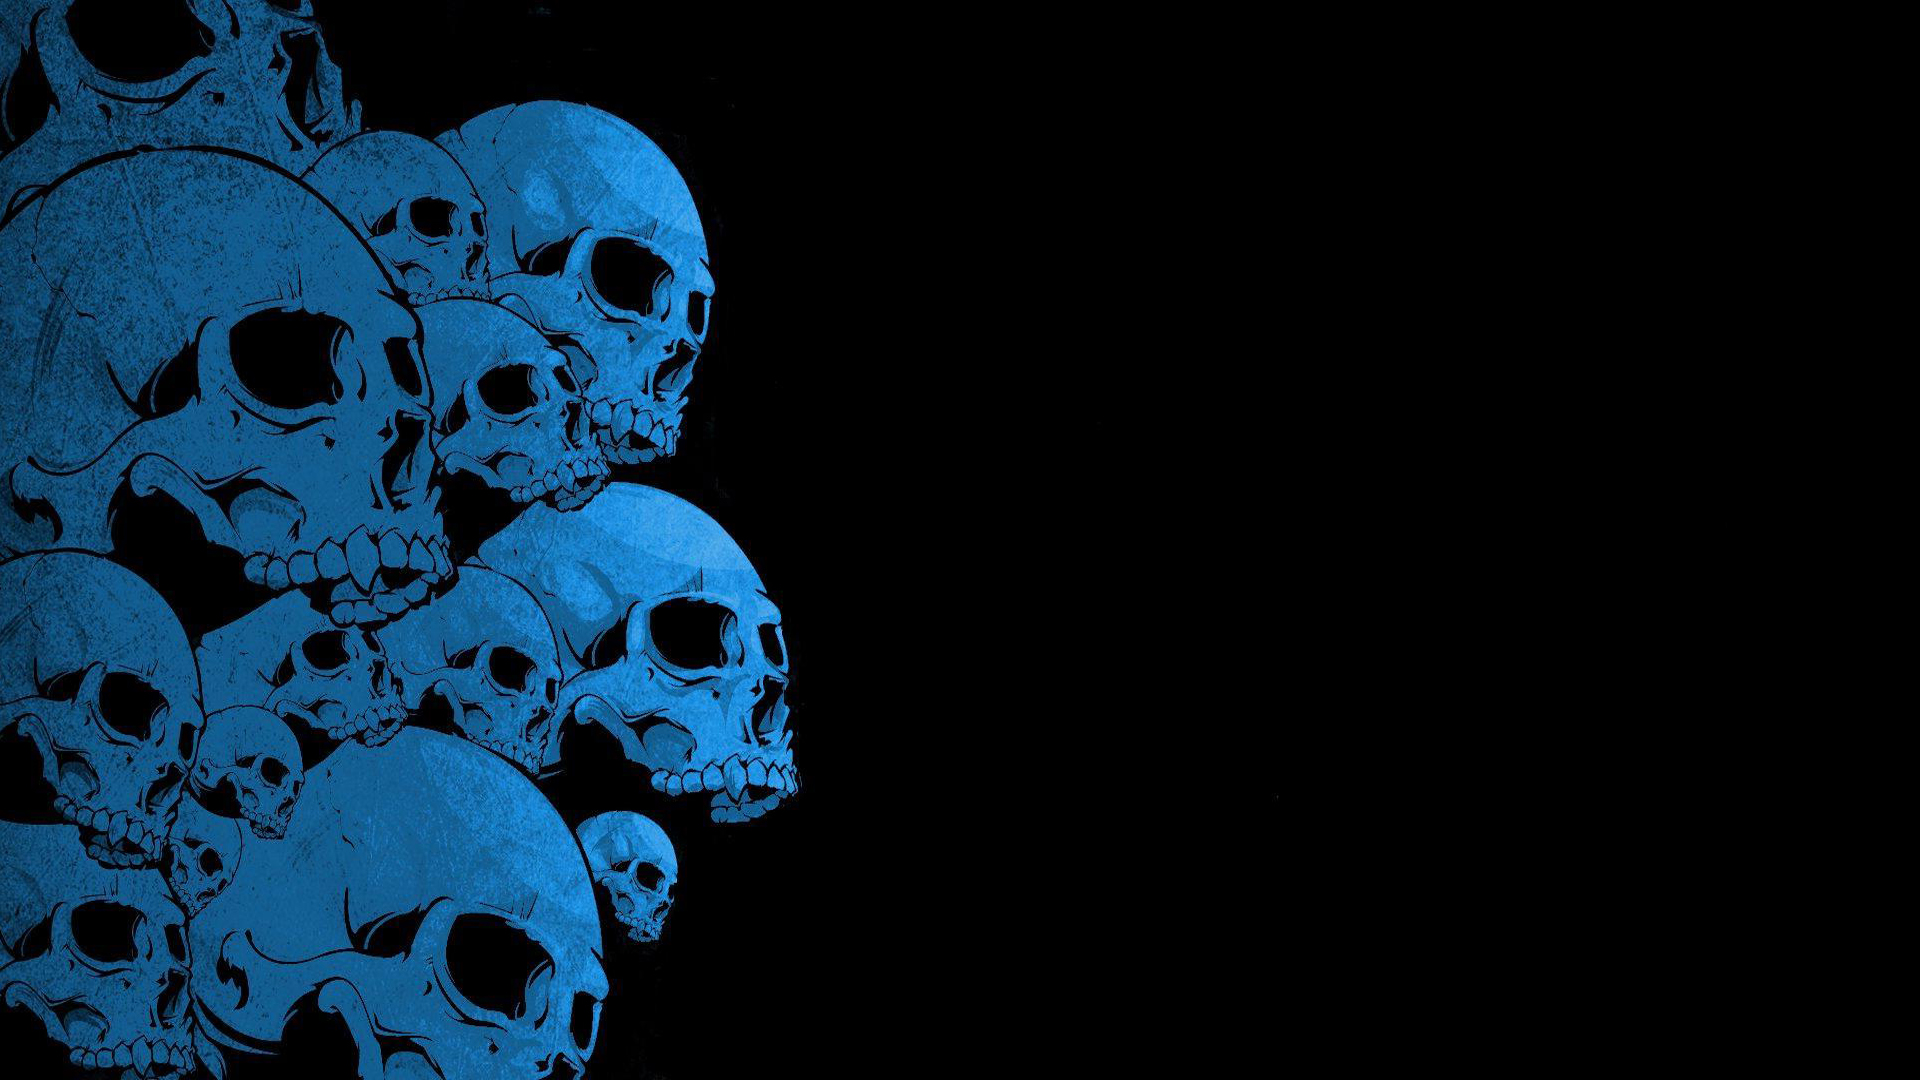 skull, background, texture, photo, blue skulls texture background